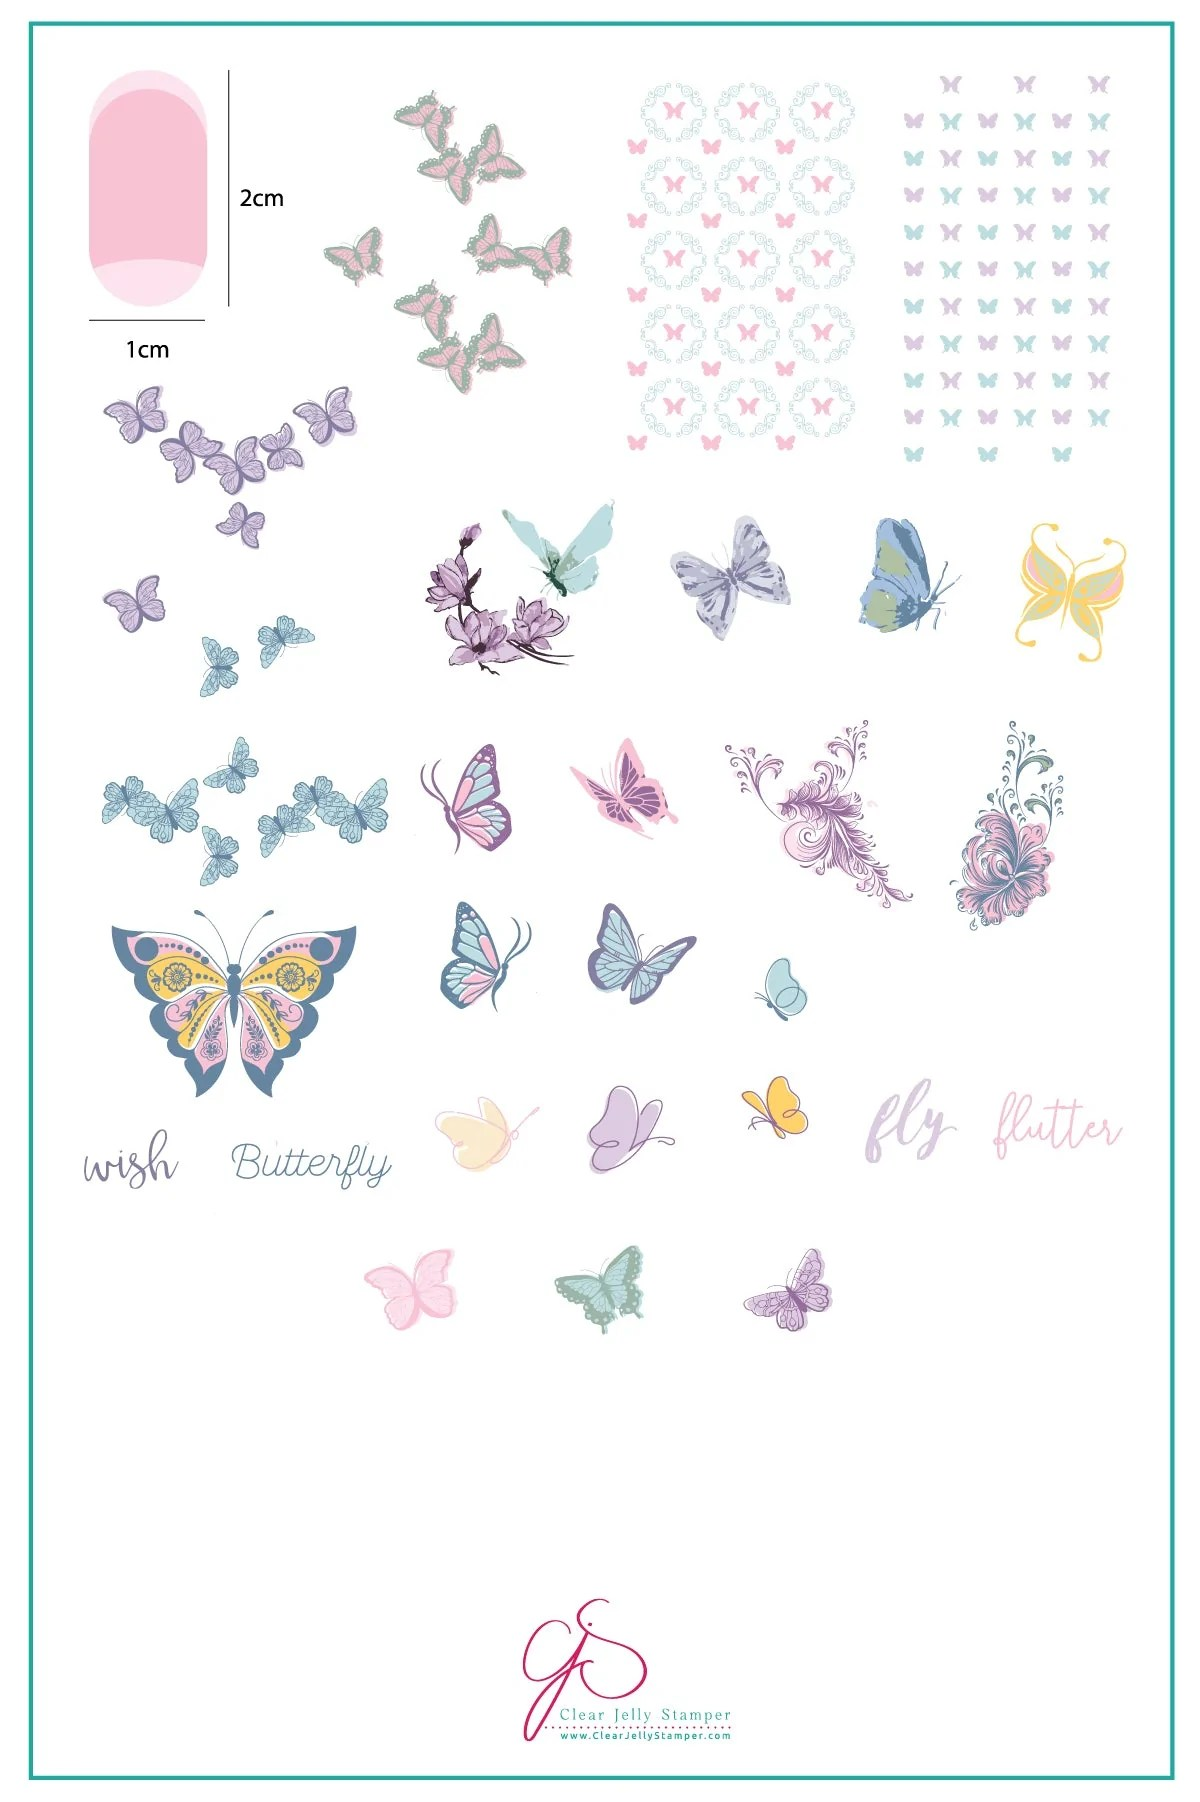 Butterfly Wishes Cjs 80 Steel Stamping Plate Clear Jelly Stamper